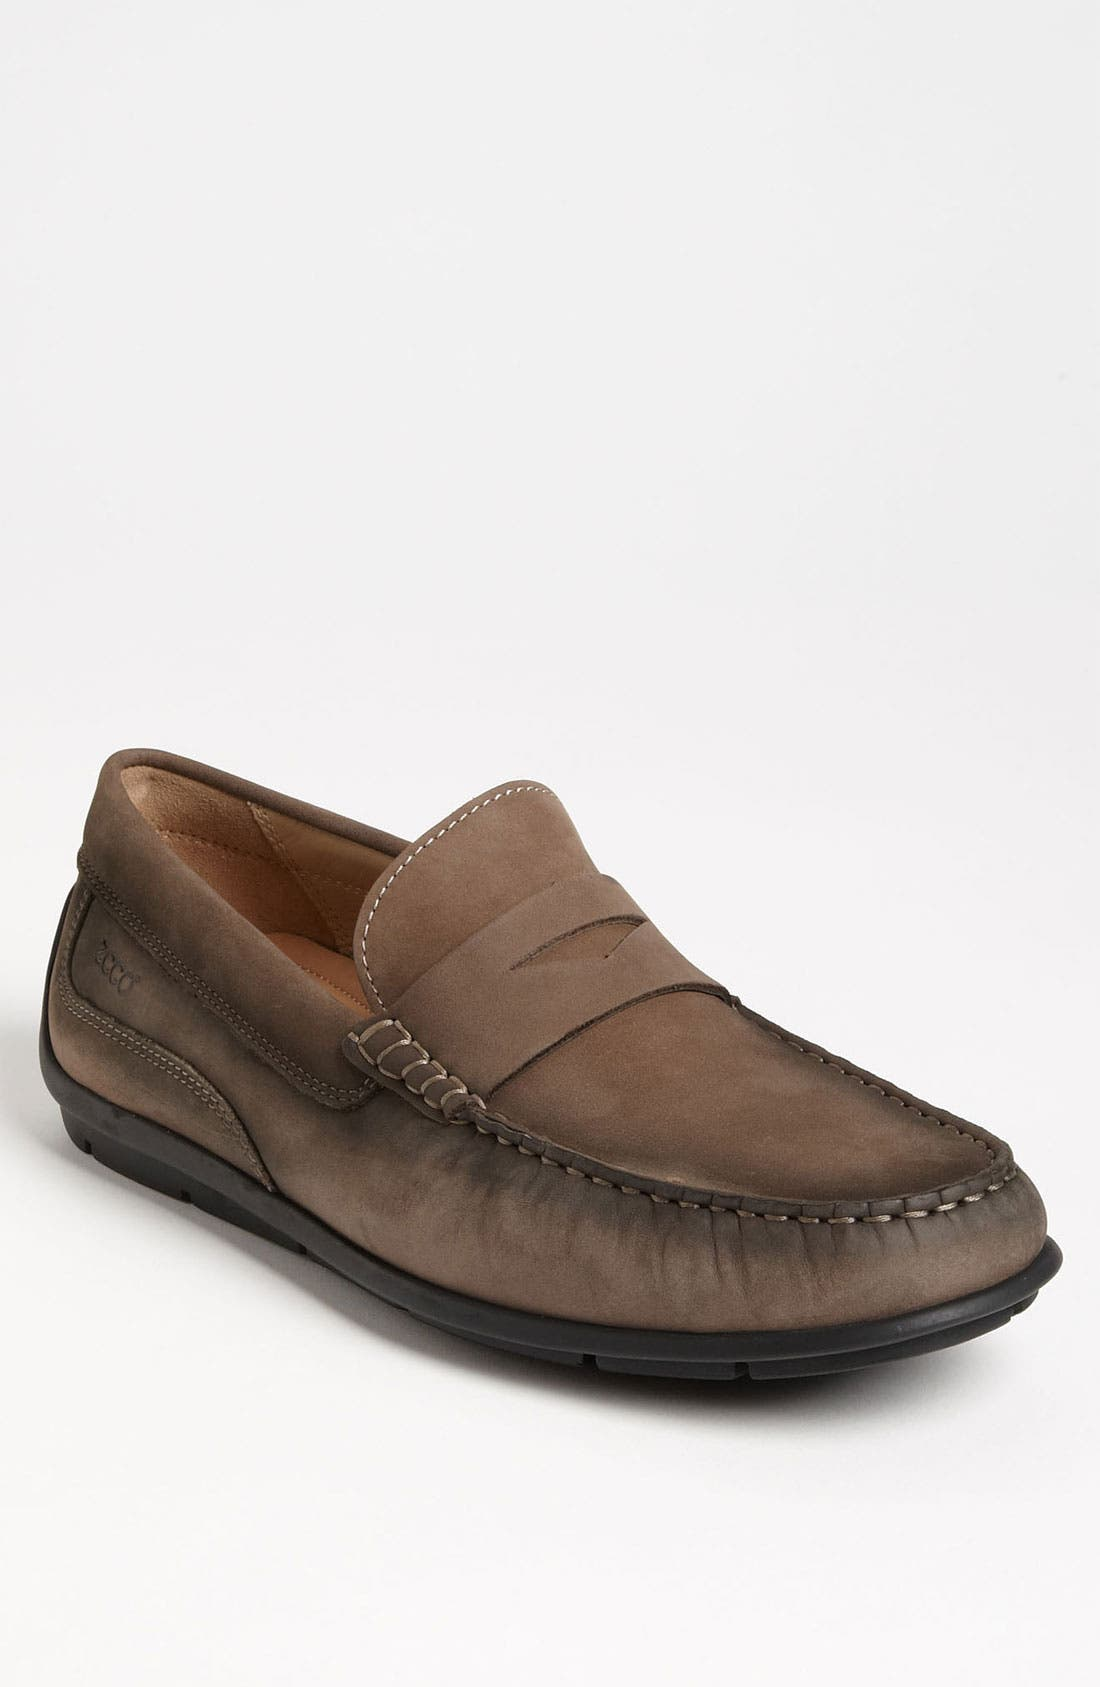 Main Image - ECCO 'Classic' Penny Loafer (Men)